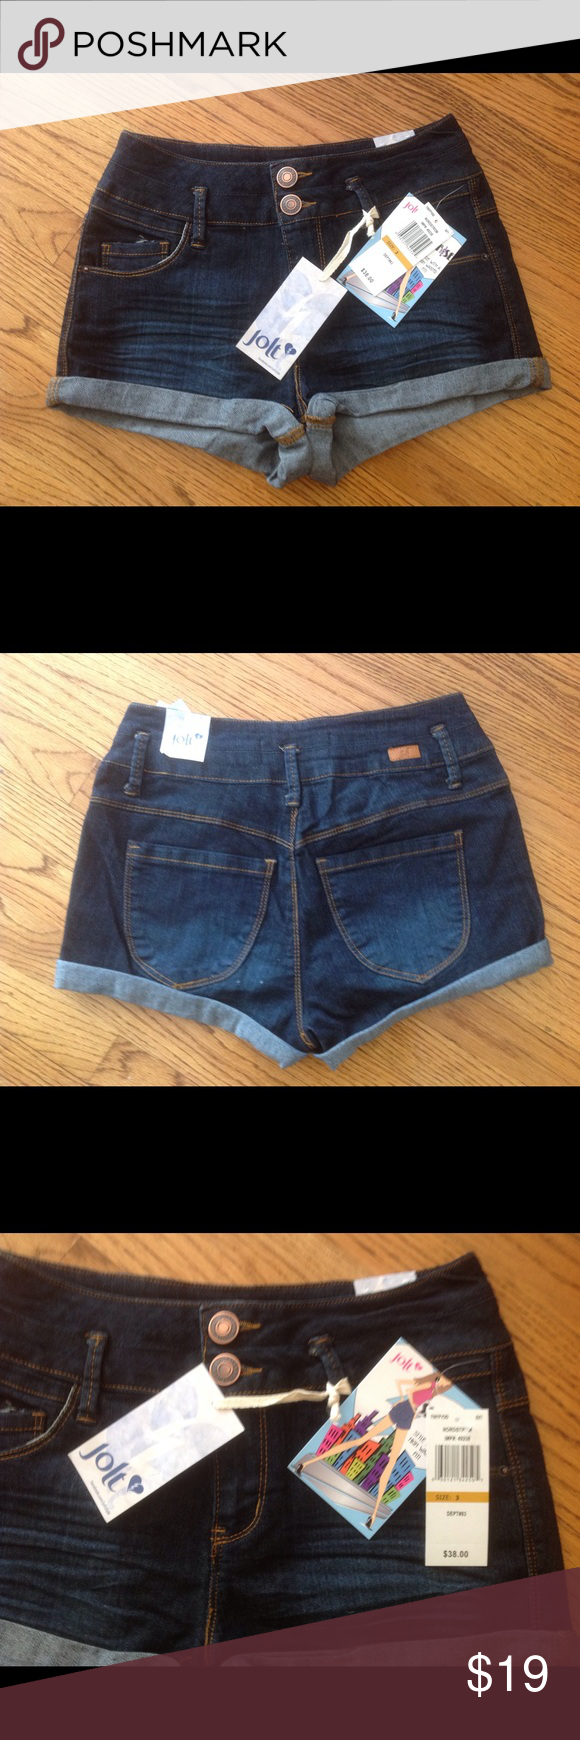 Jolt high waisted jeans shorts Great high waisted brand new jeans shorts by Jolt! ❤️ Sold in Nordstrom for $38!!! ❤️ ☀️Spring break is almost here and summer festivals too! ❤️ Jolt Shorts Jean Shorts